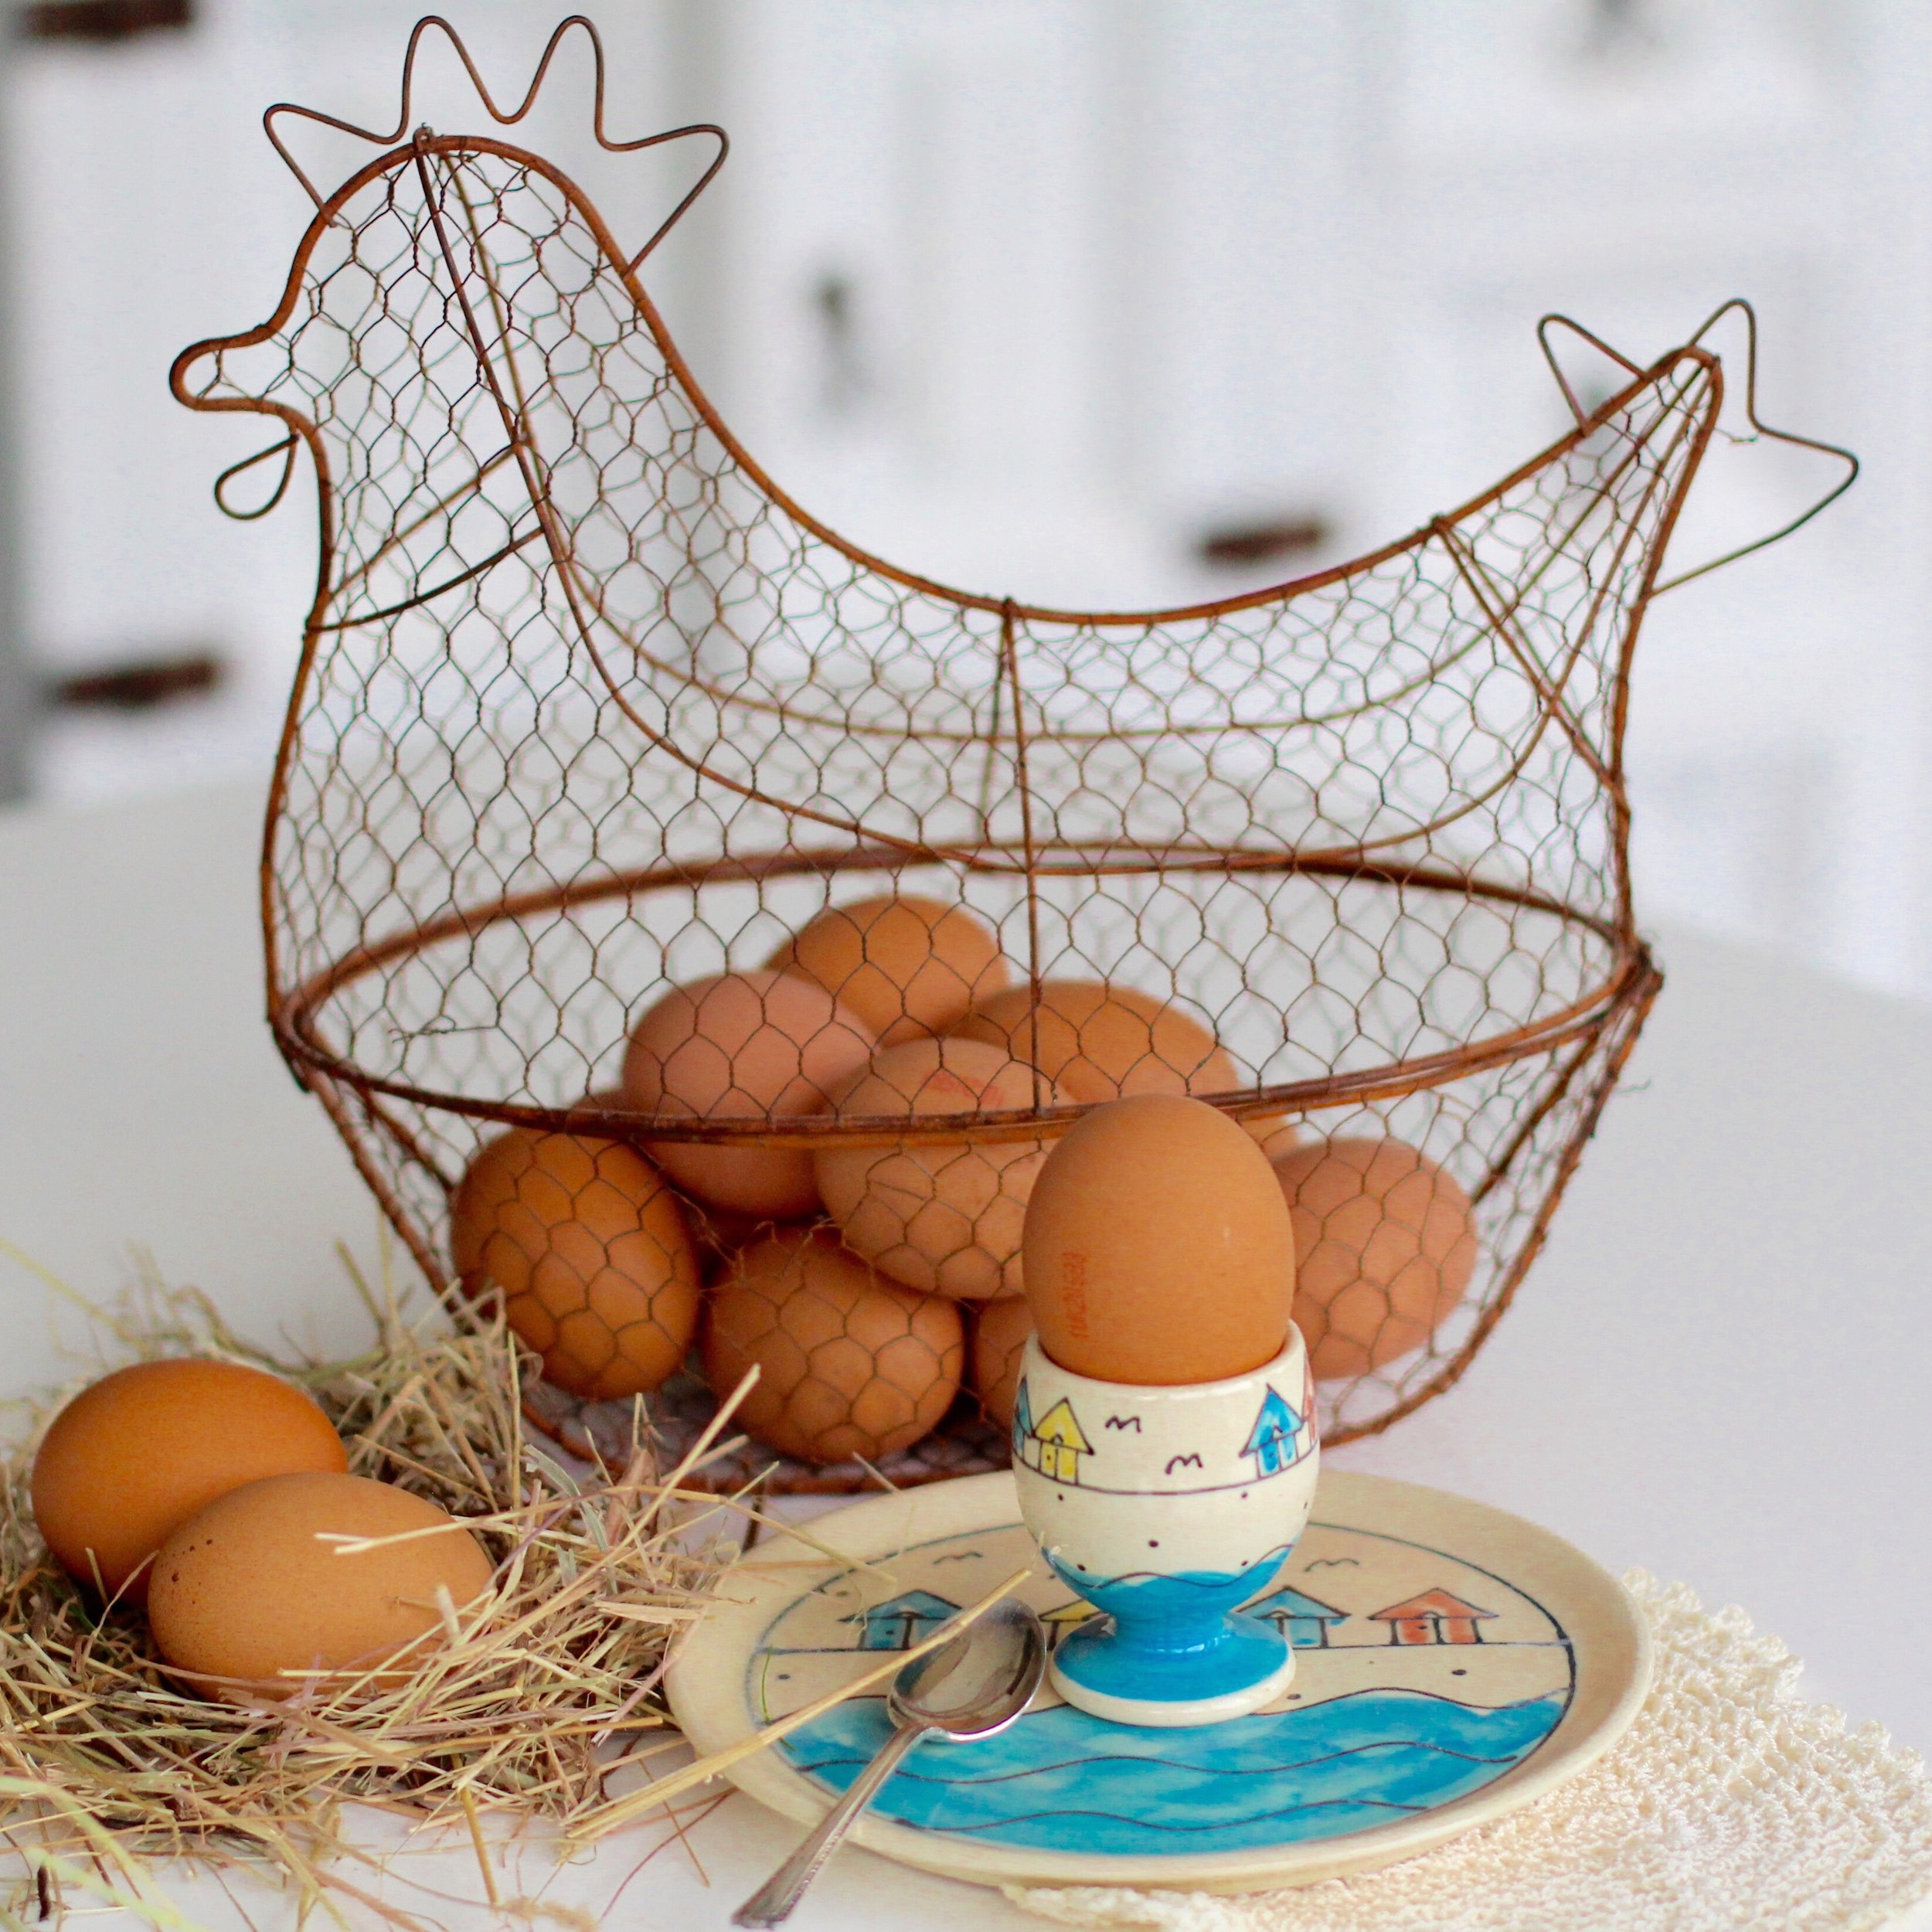 What came first, the chicken or the egg!